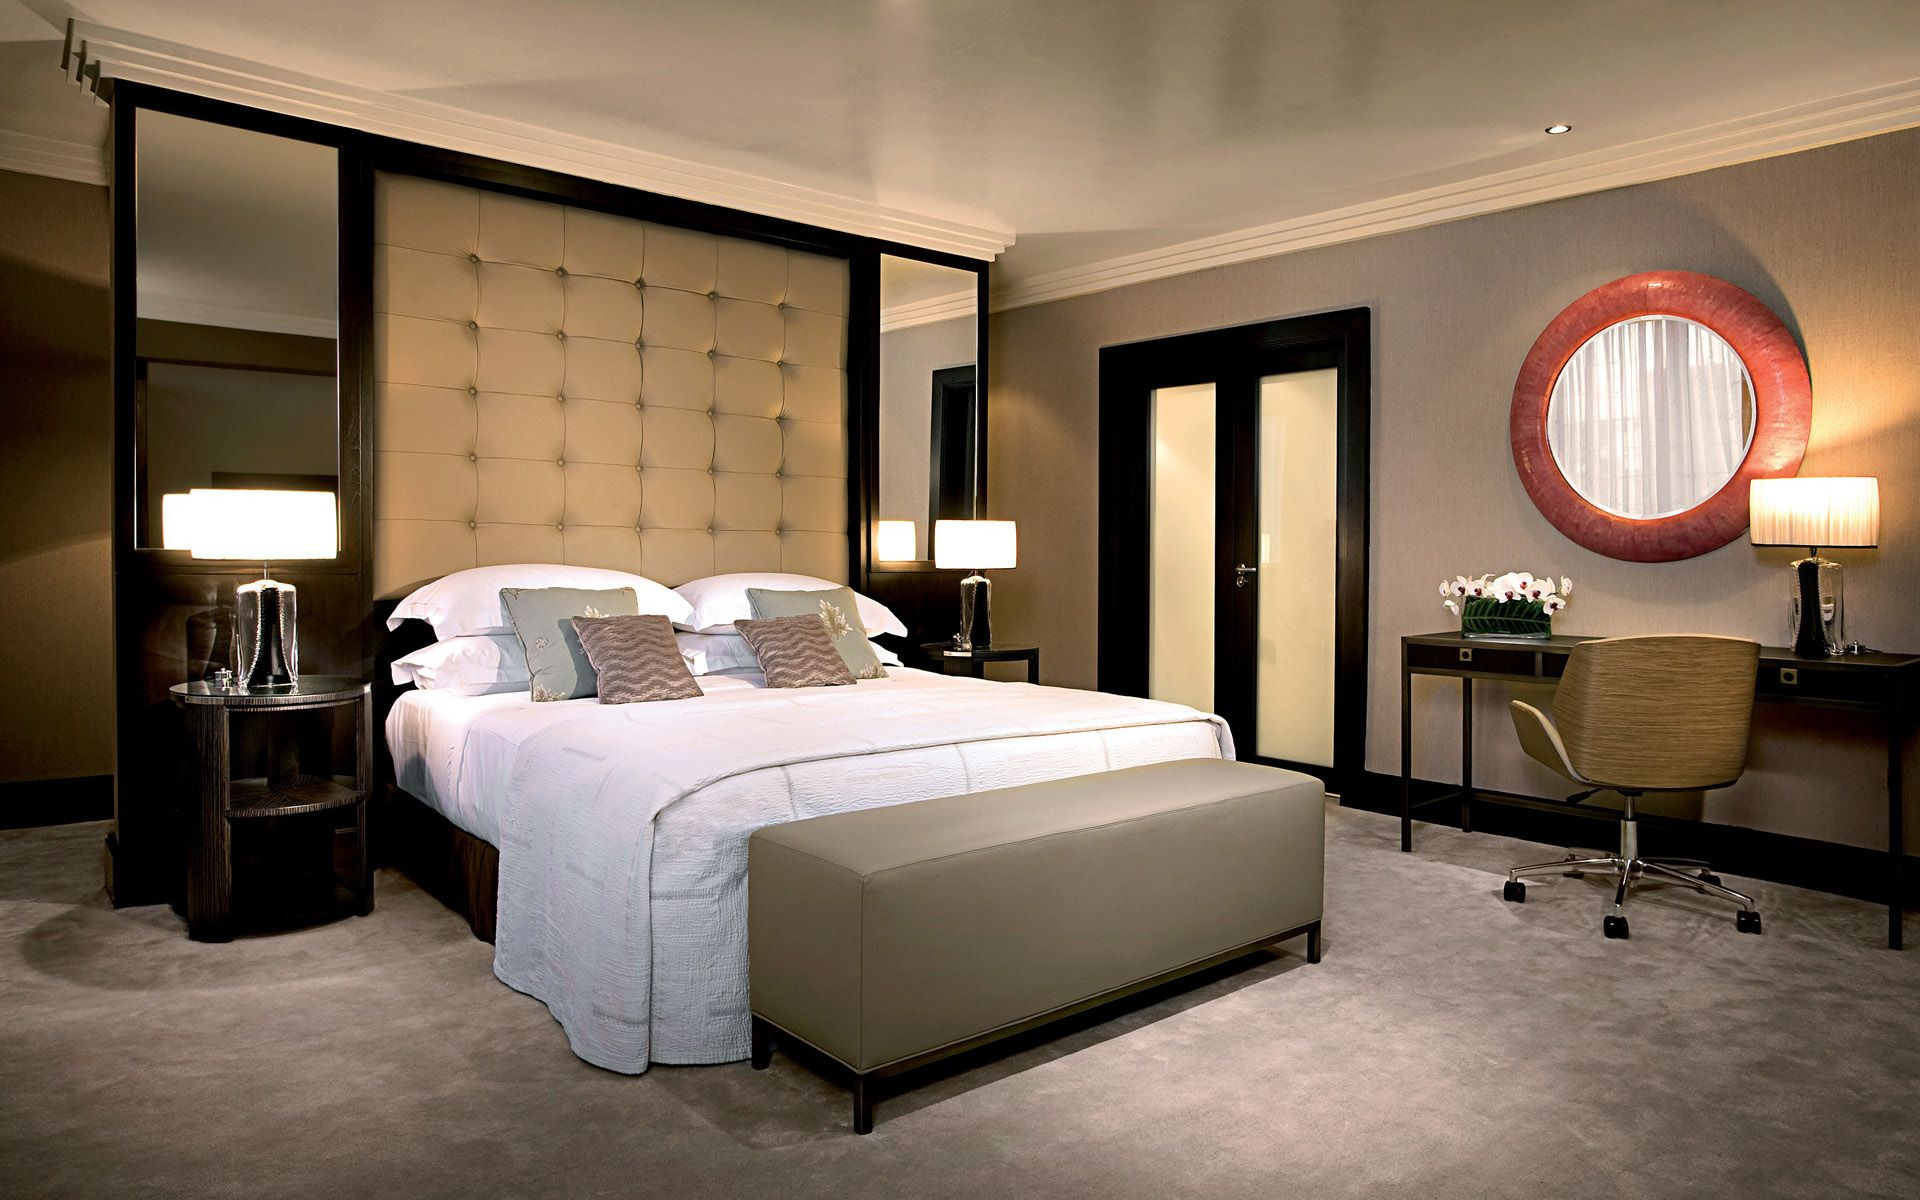 Best ideas about Young Adult Room Decor . Save or Pin Bedroom Ideas for Young Adults Now.